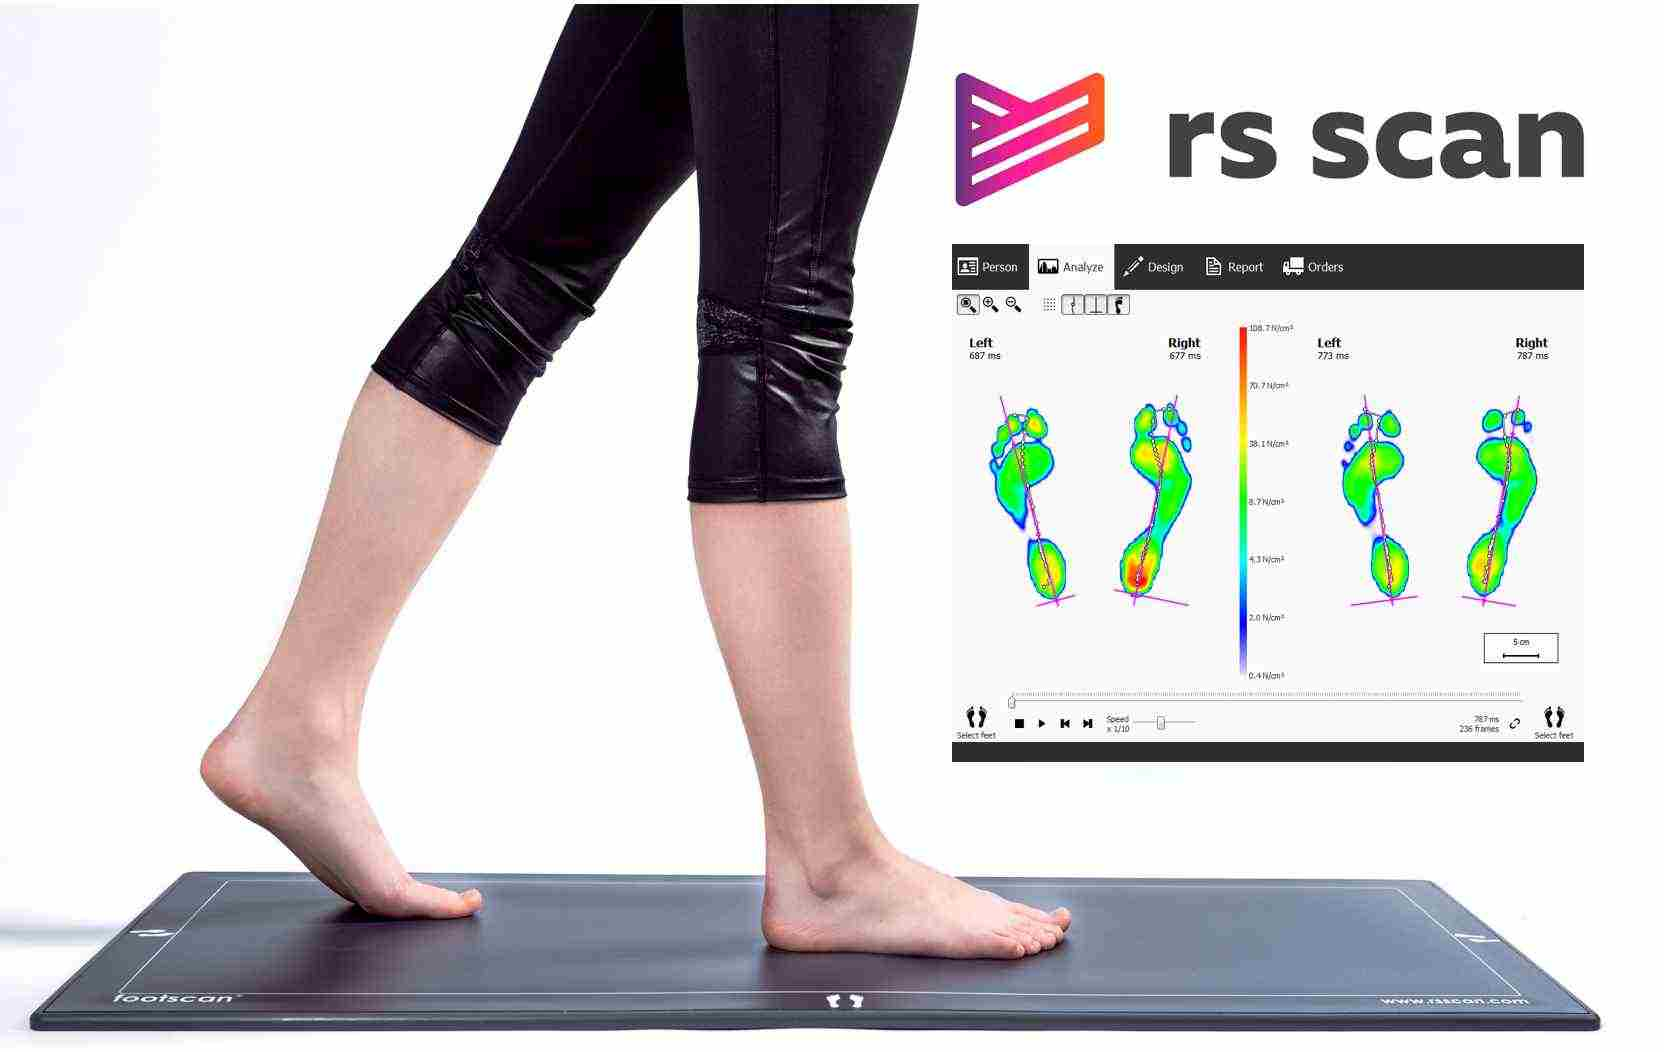 footscan analysis